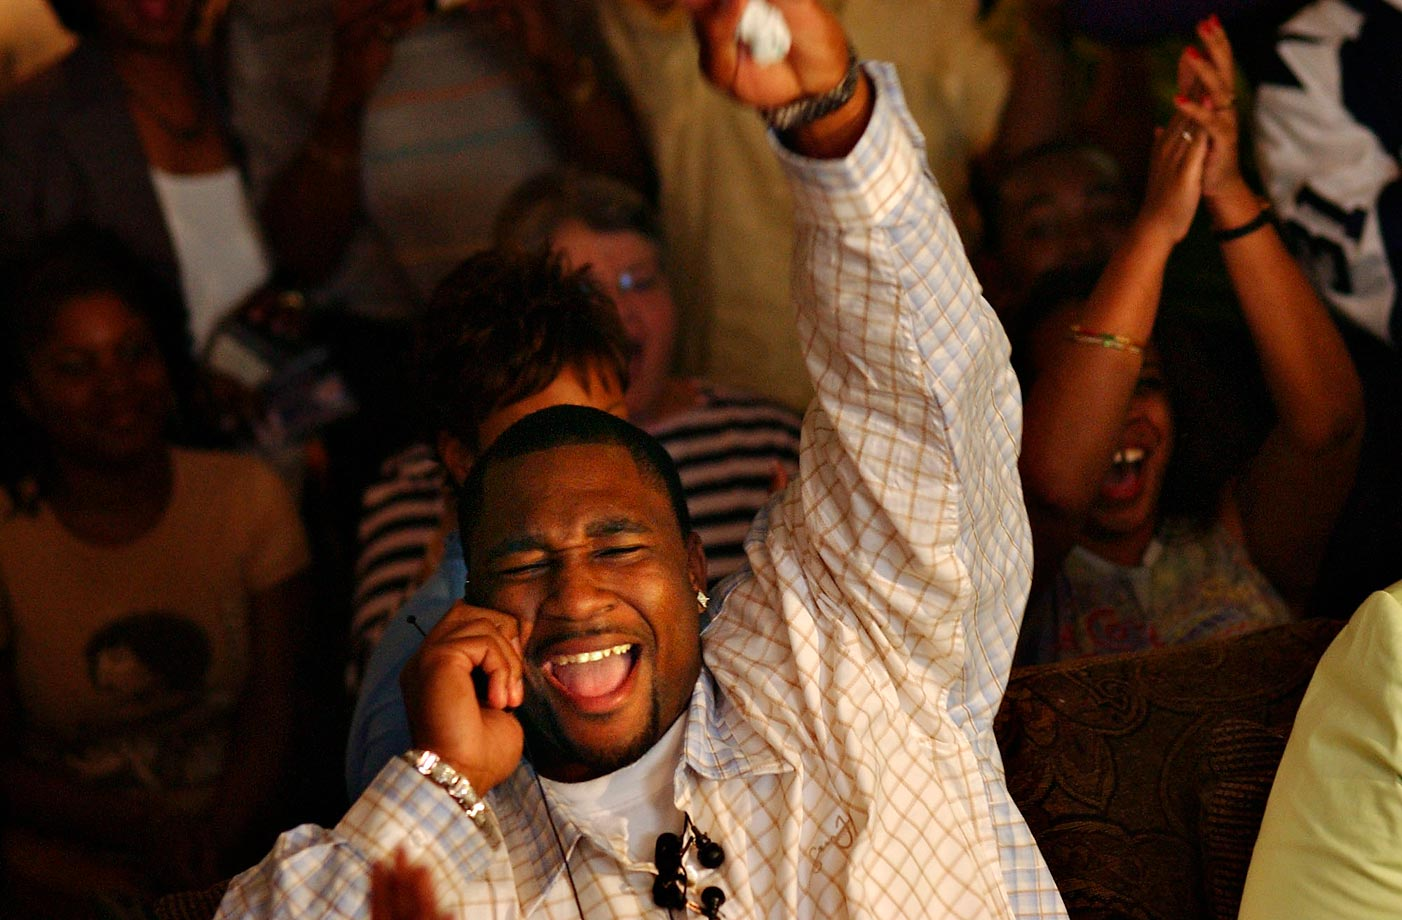 Marcus Spears, who played defensive end for Lousiana State, celebrates while learning he was being drafted 20th by the Dallas Cowboys in 2005.